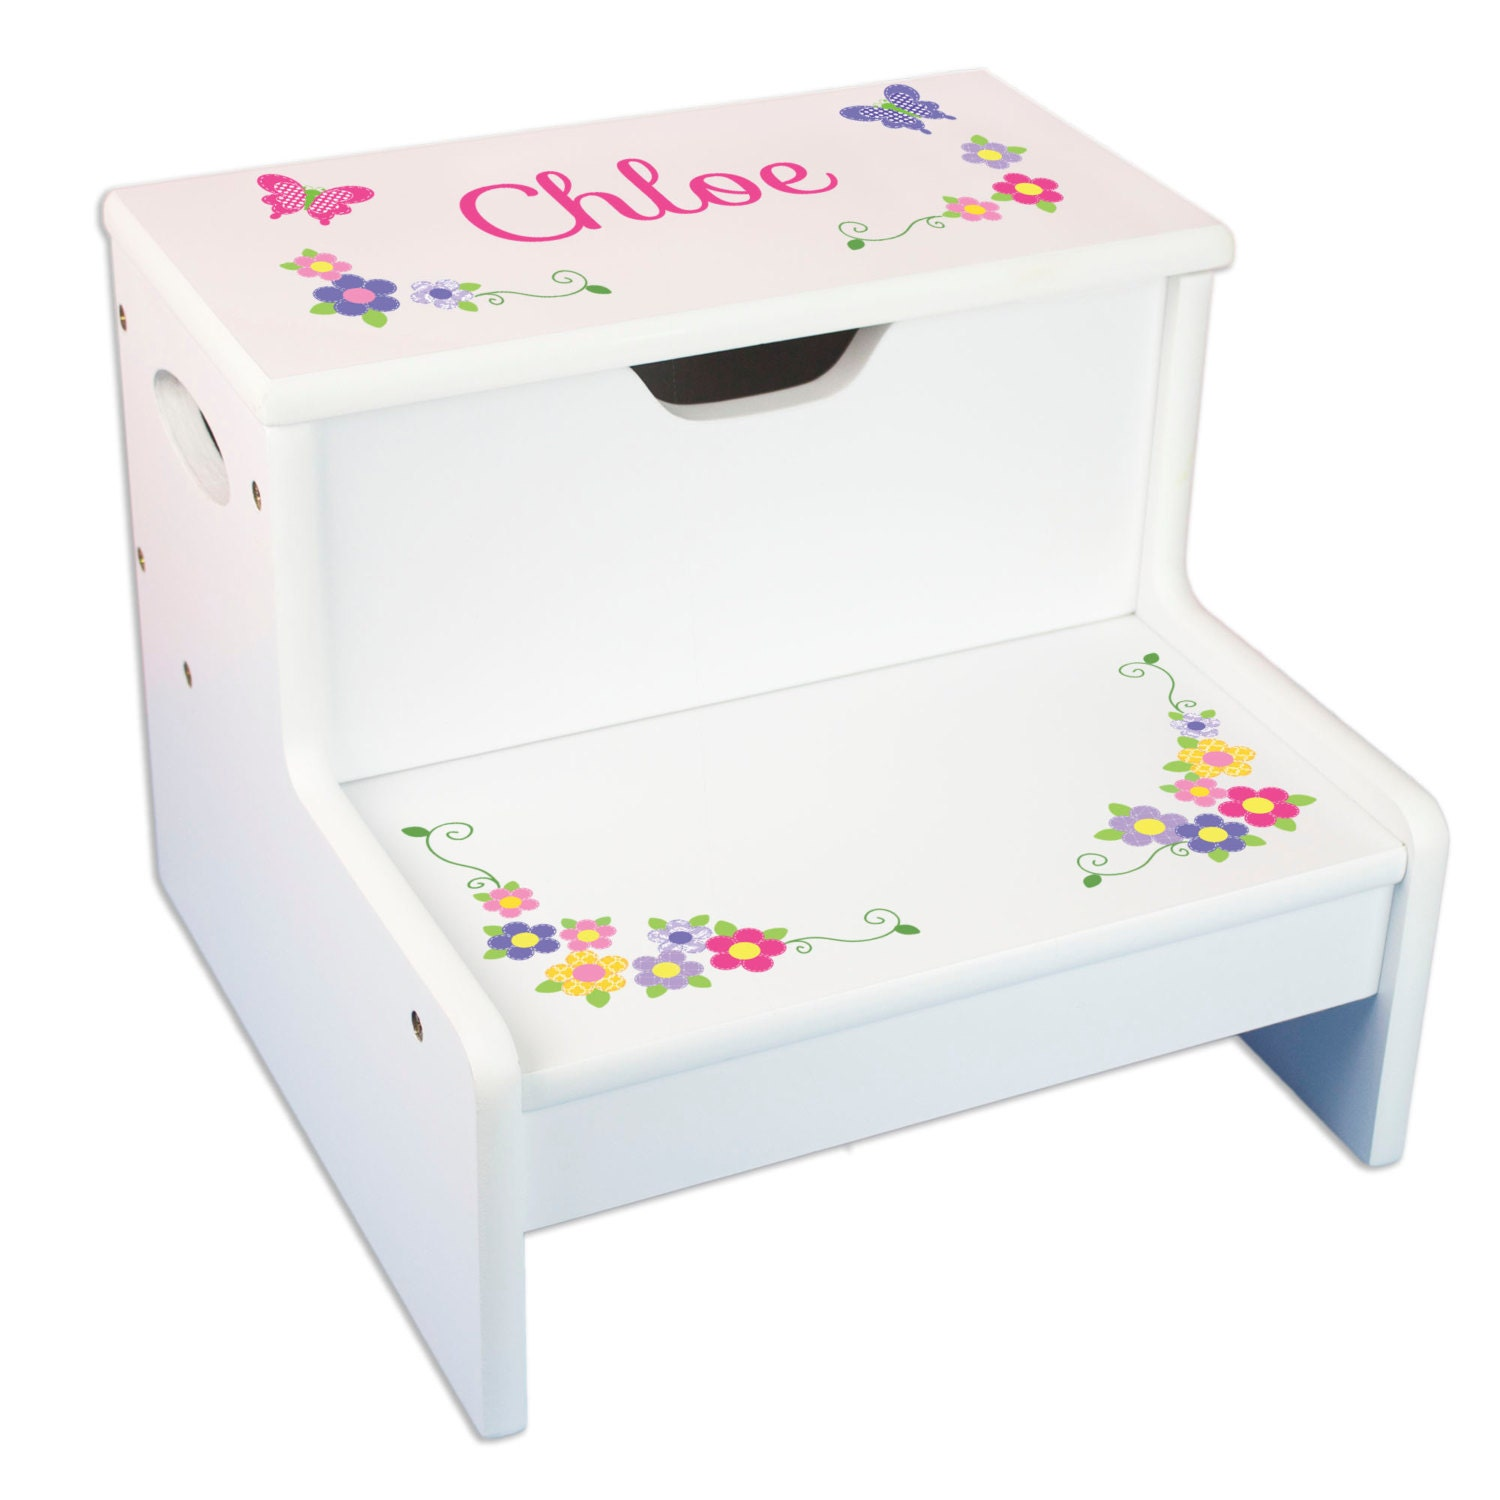 Girls Personalized Step Stool With Storage Stool By Mybambino